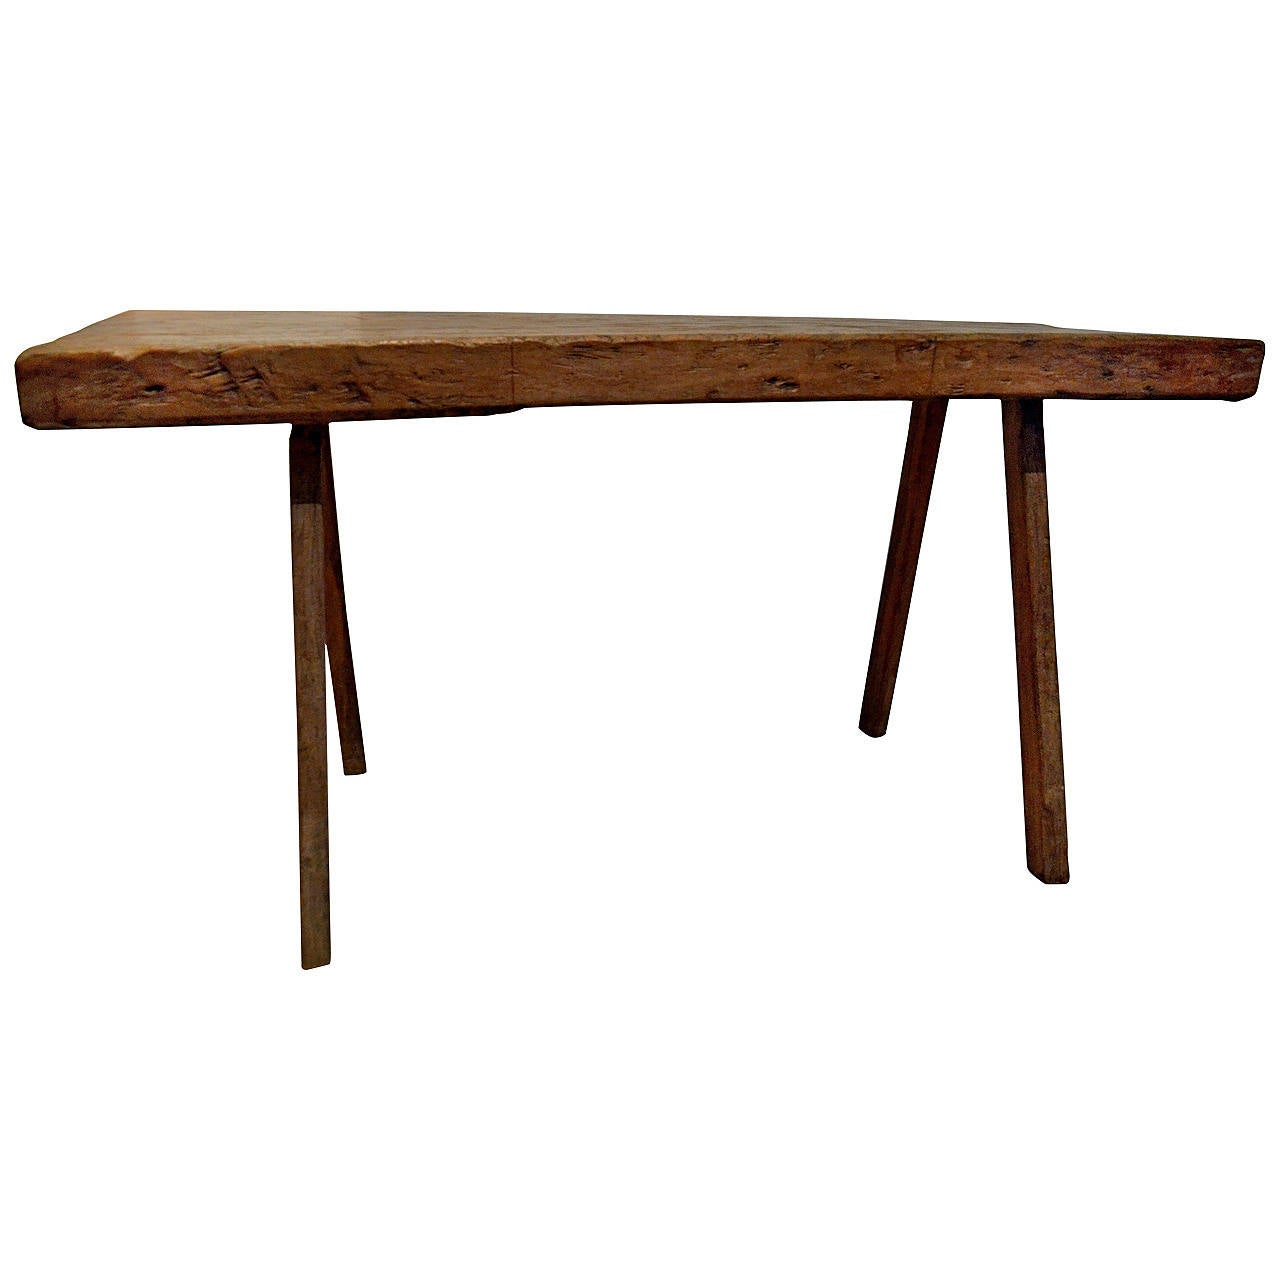 Vintage reclaimed wood console table at stdibs